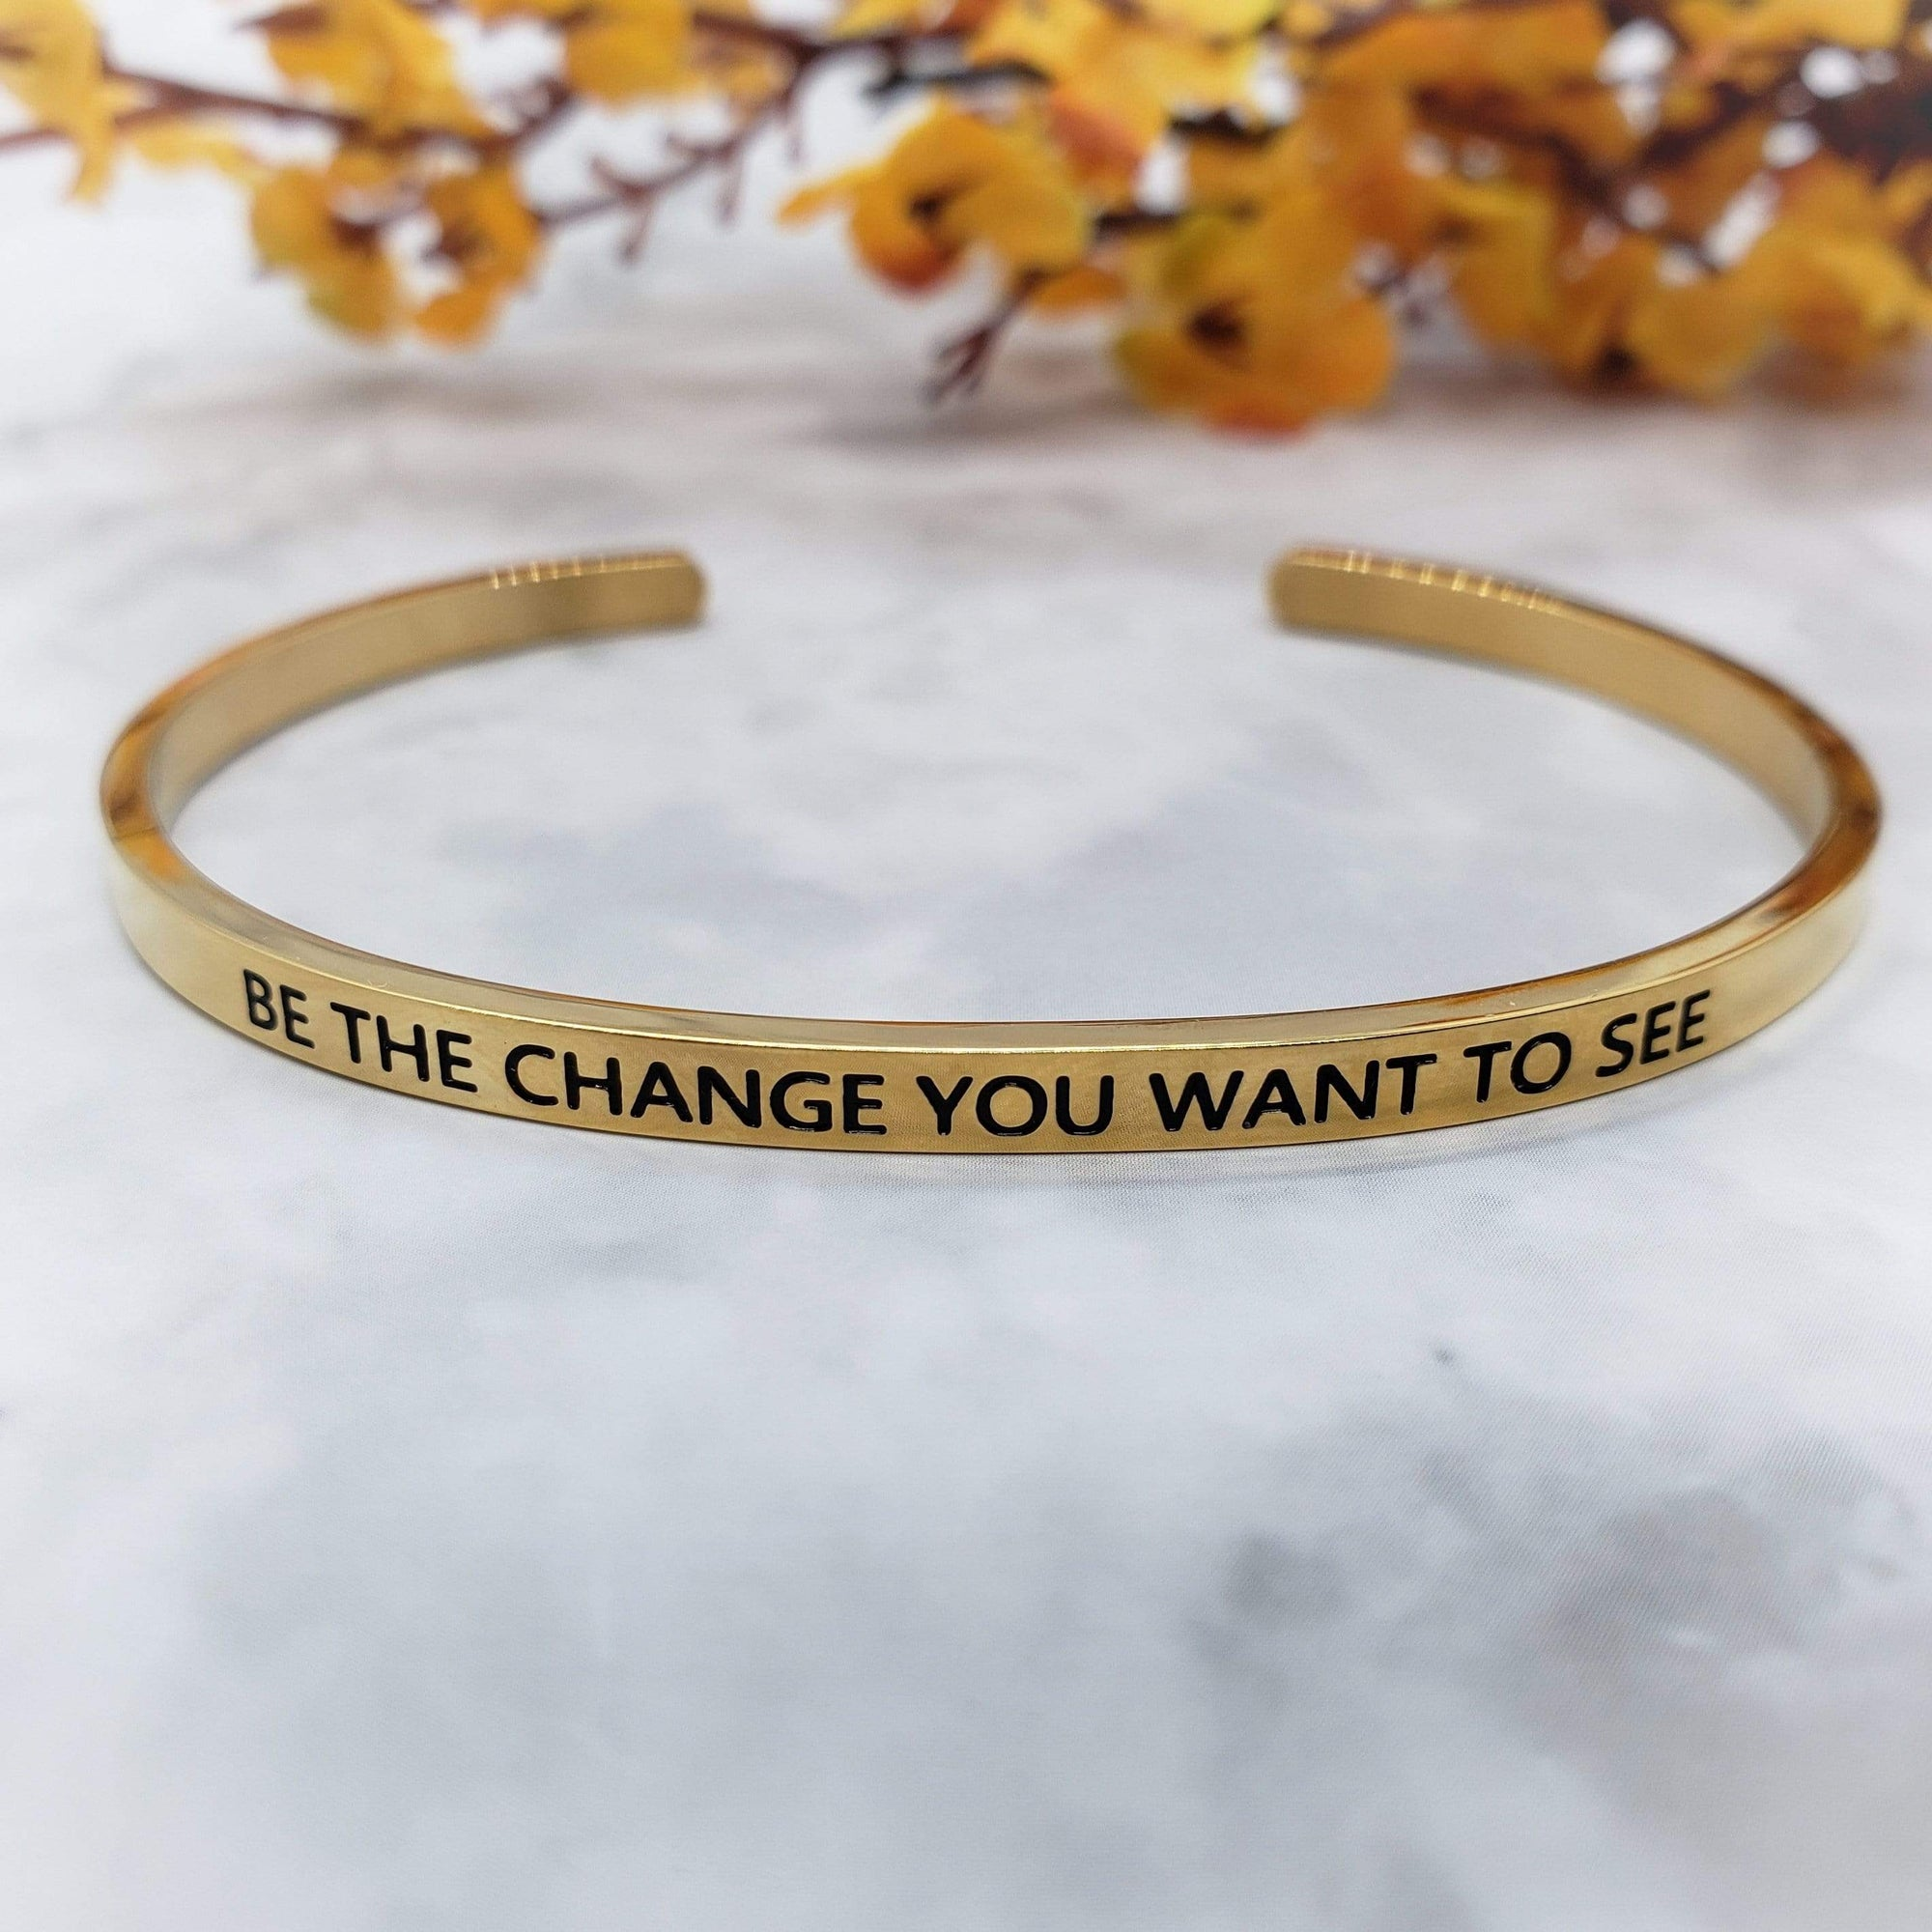 Be The Change You Want To See - Motivational Cuff Bracelet (Gold or Silver) Bracelets & Bangles